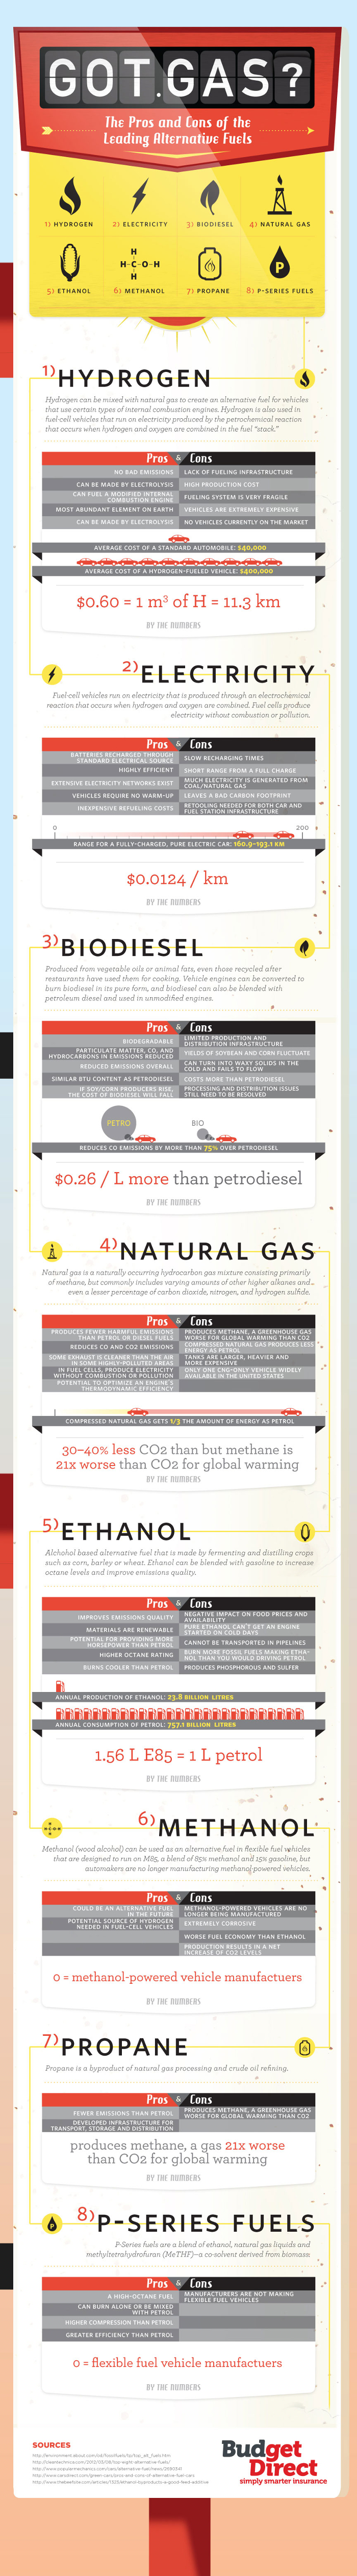 What Is The Pros And Cons Of Using Natural Gas